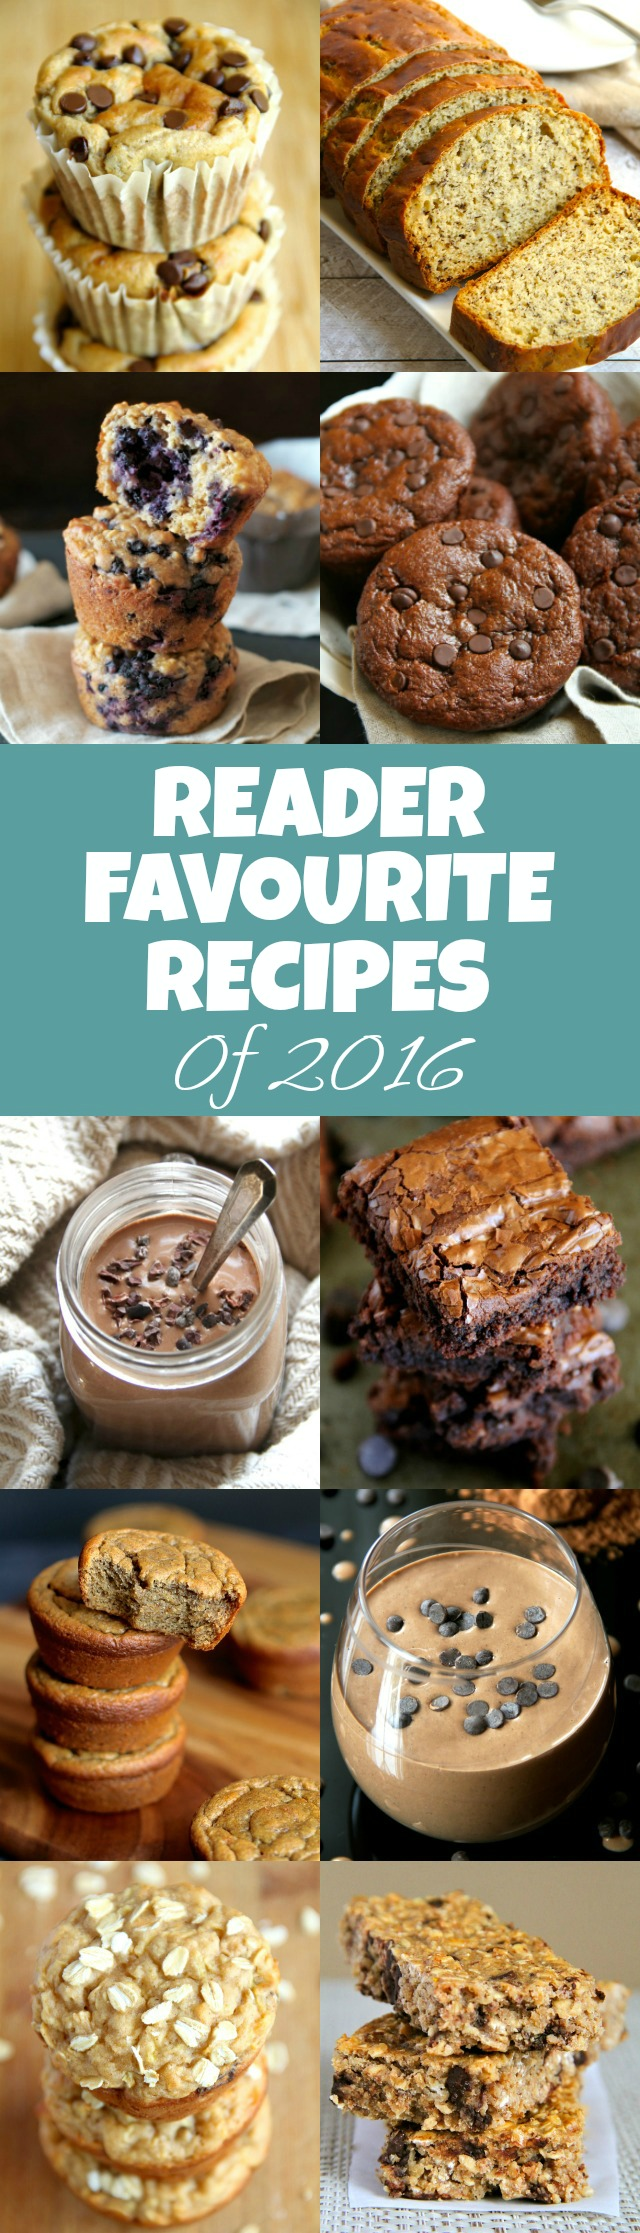 Top 10 Reader Favourite Recipes of 2016 | running with spoons